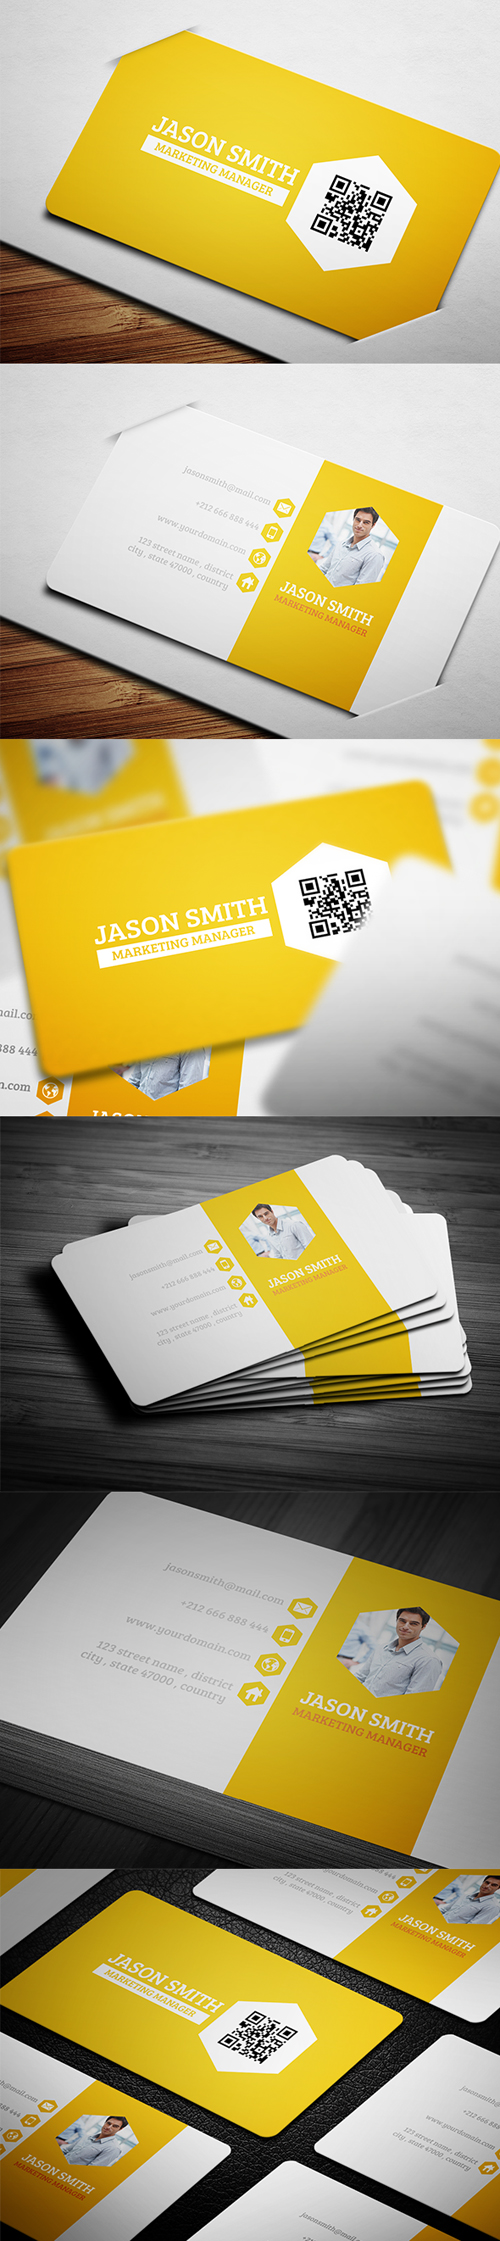 Exclusive design business cards templates design graphic business cards template design 4 magicingreecefo Image collections